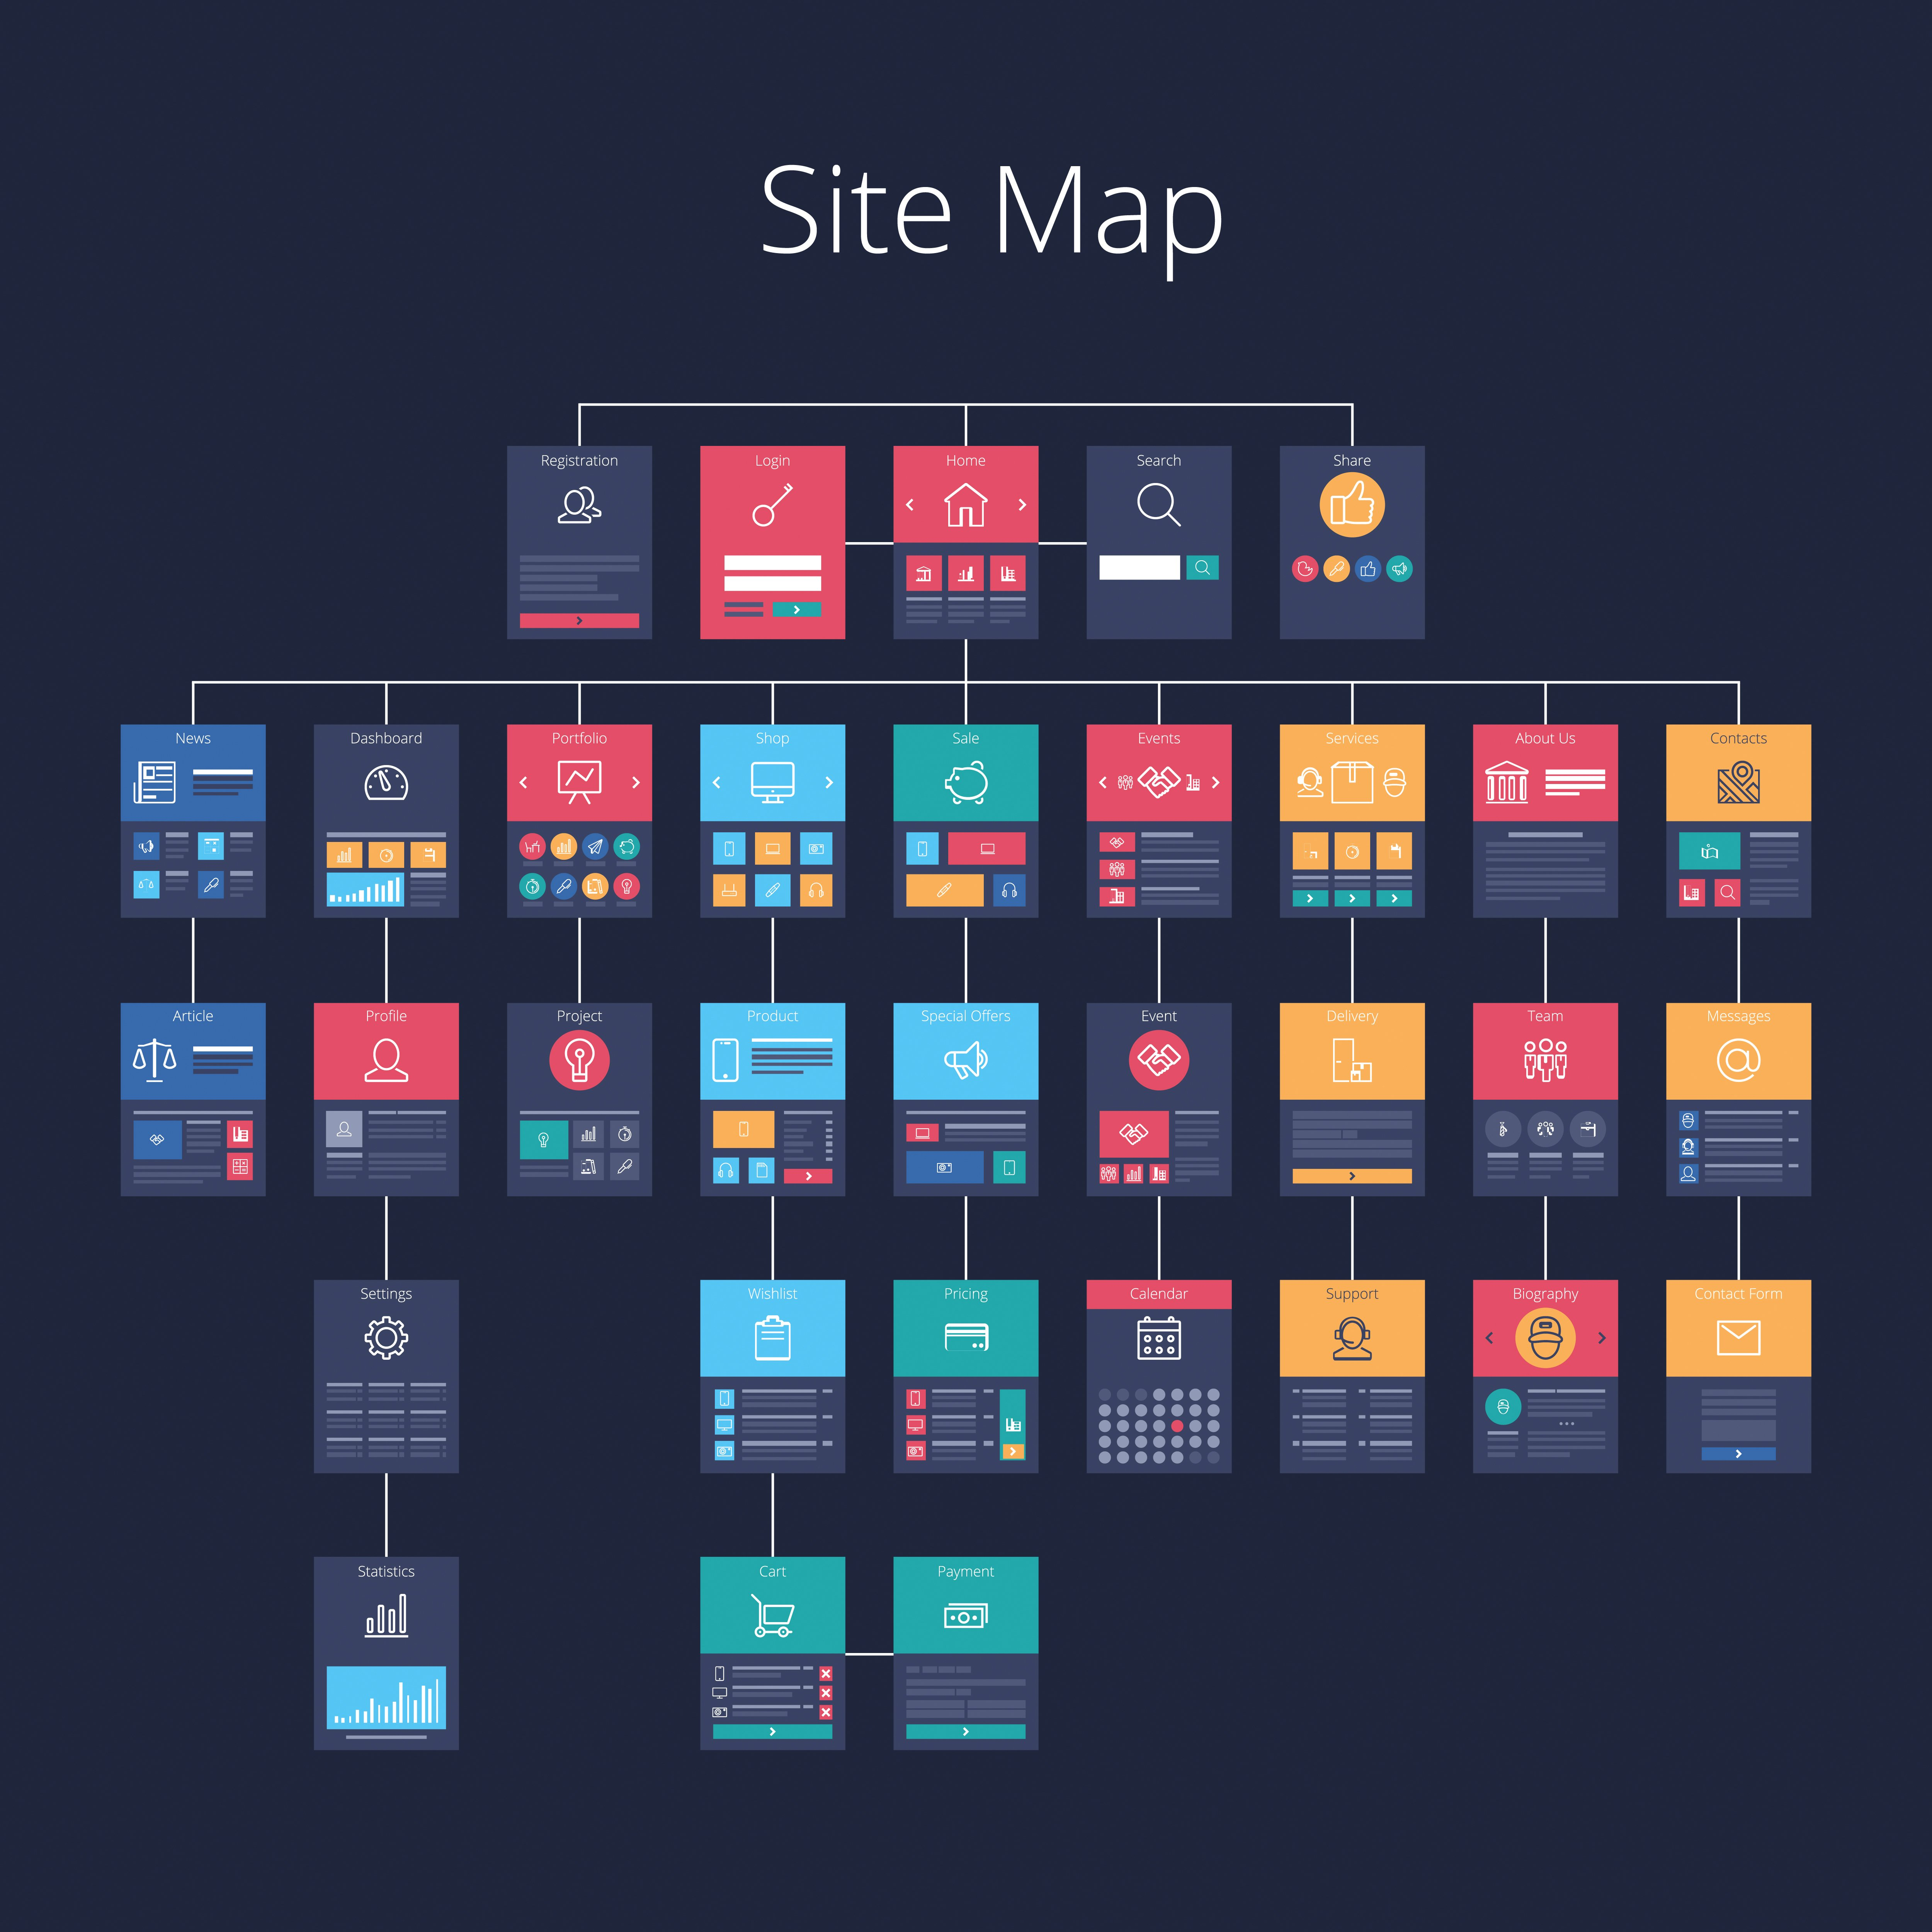 This is the best site structure in 2020, according to Google